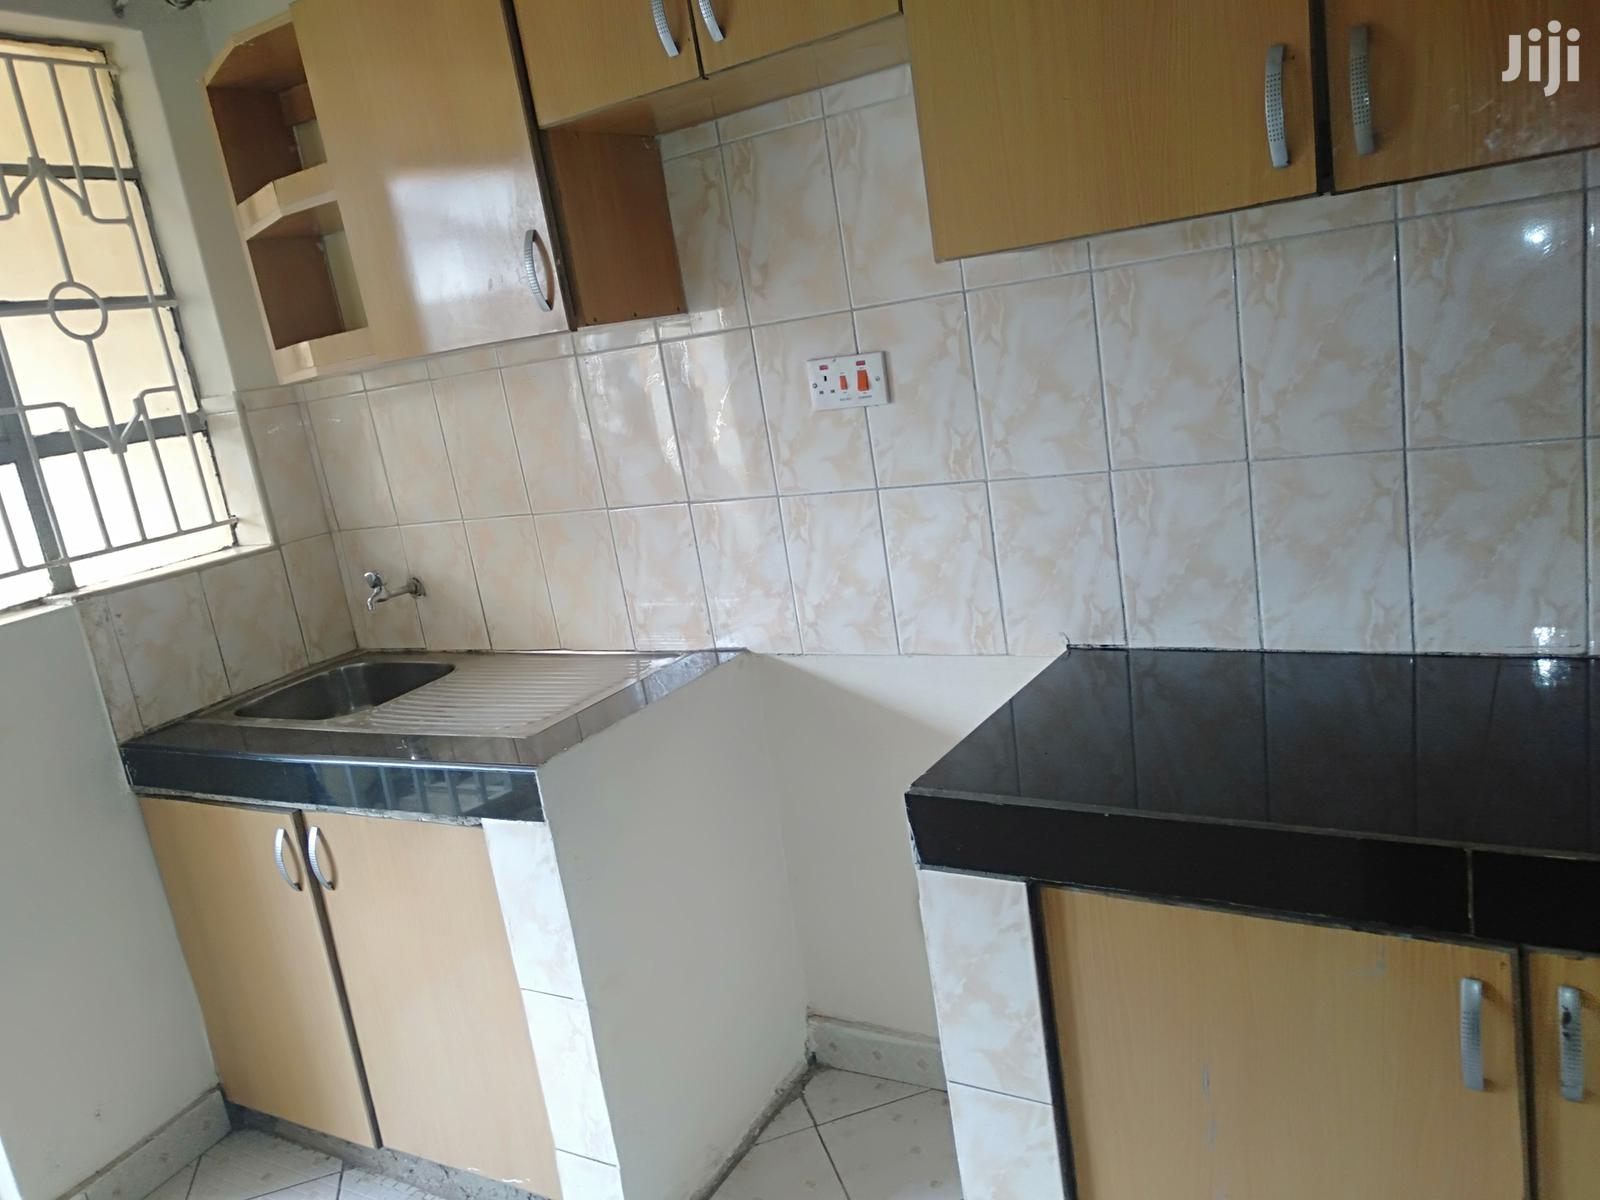 Executive 2br Apartment To Let In Jamuhuri   Houses & Apartments For Rent for sale in Kilimani, Nairobi, Kenya